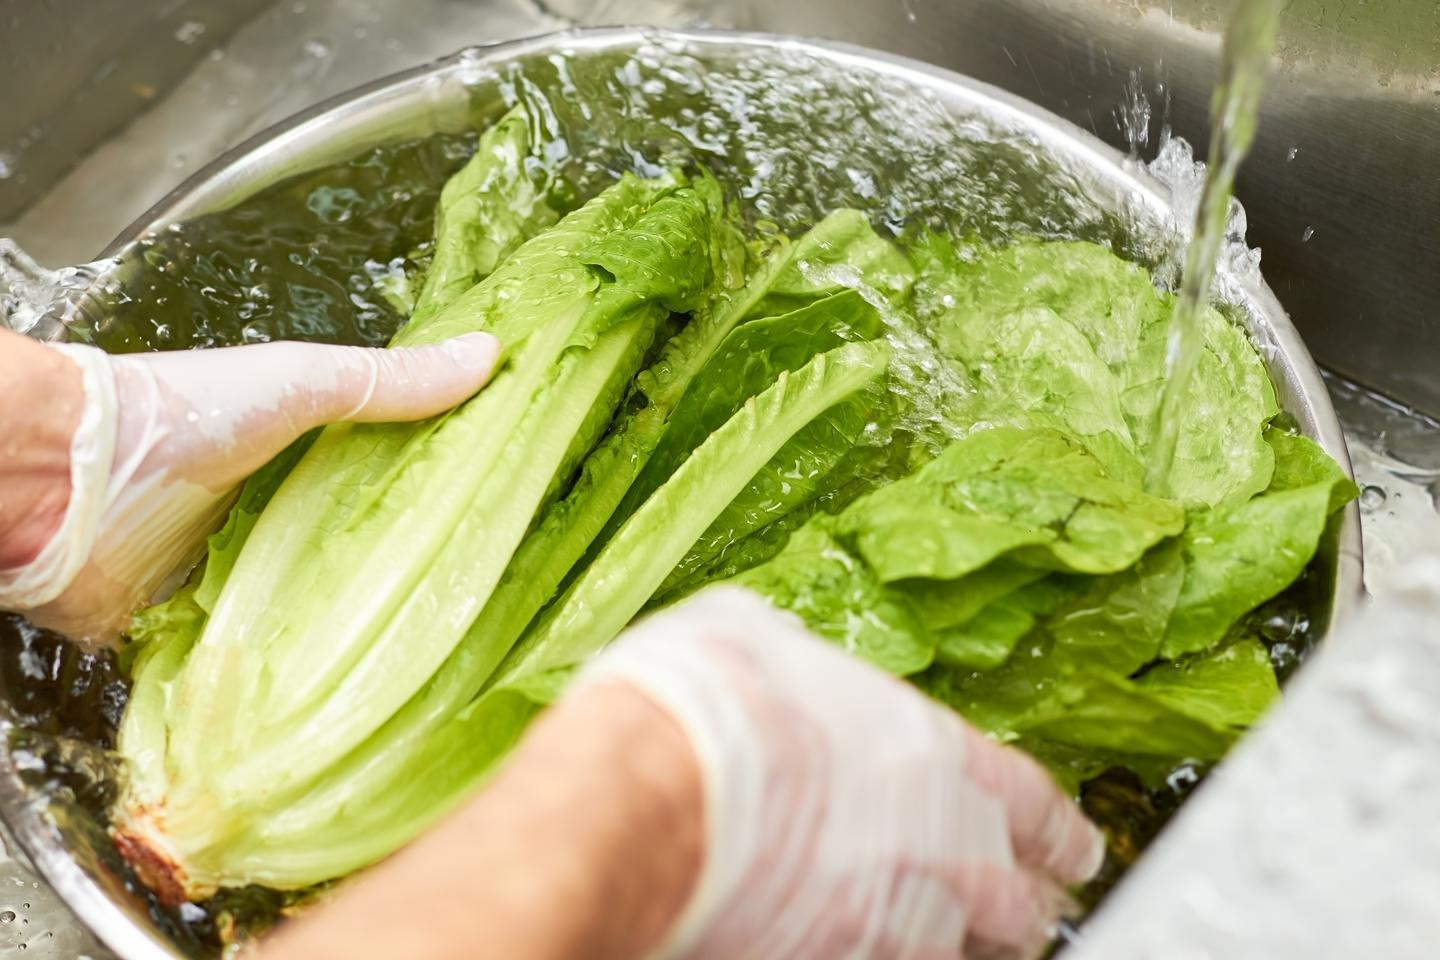 While it's important to rinse leafy vegetables before eating them, the use of regular water alone may not be sufficient to dislodge harmful bacteria